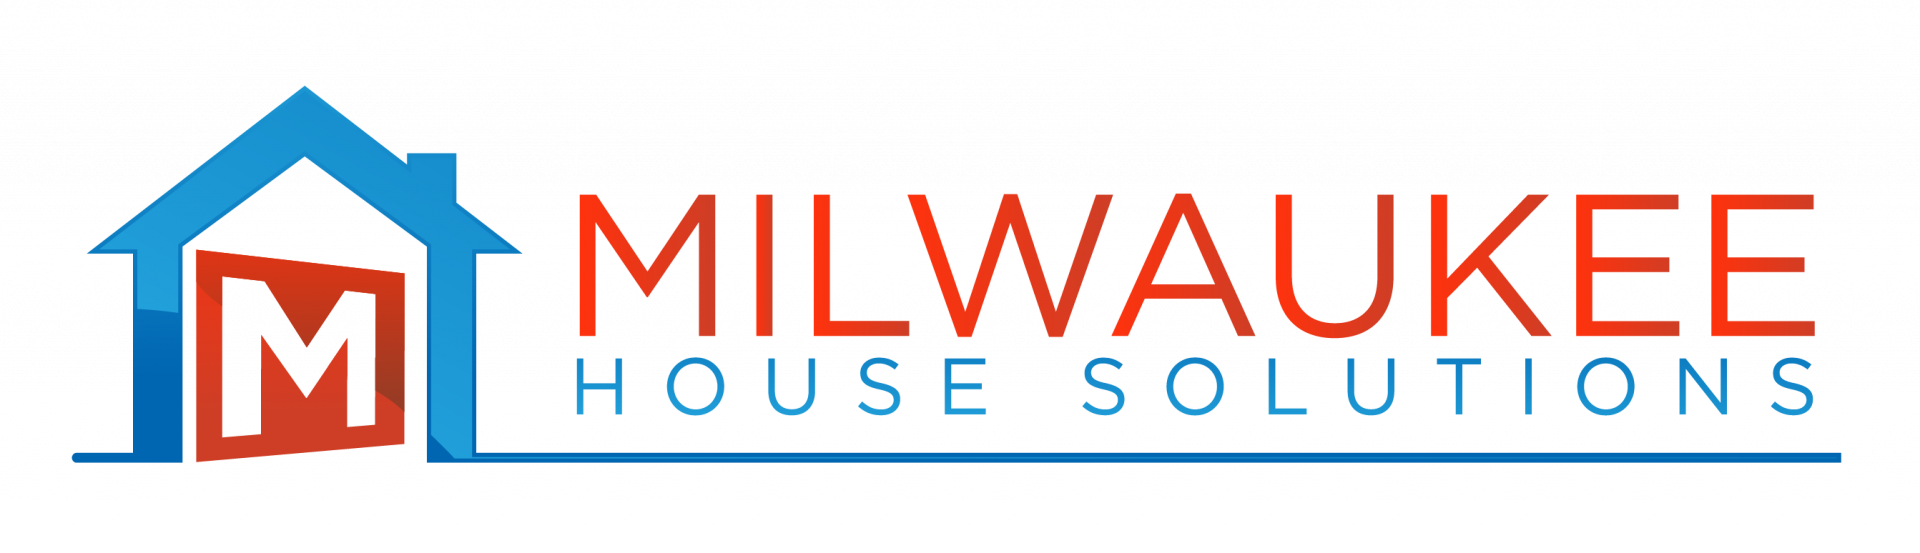 Milwaukee House Solutions Offers Alternative to Traditional Realtors